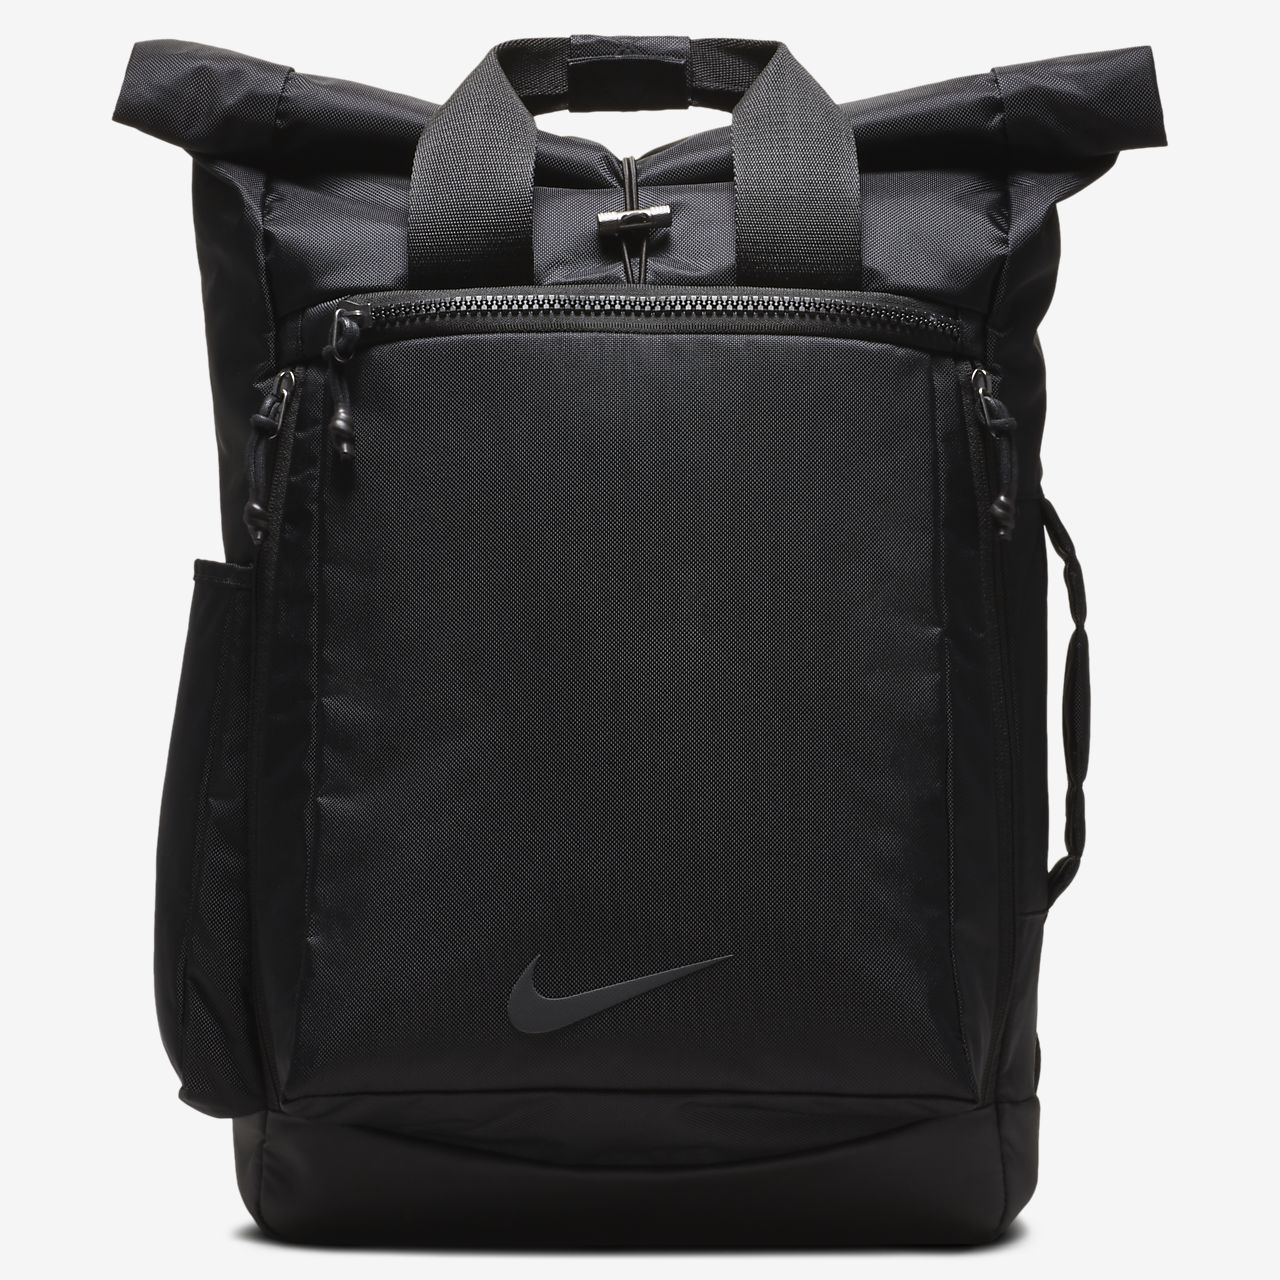 cda087e3d75b Nike Vapor Energy 2.0 Training Backpack